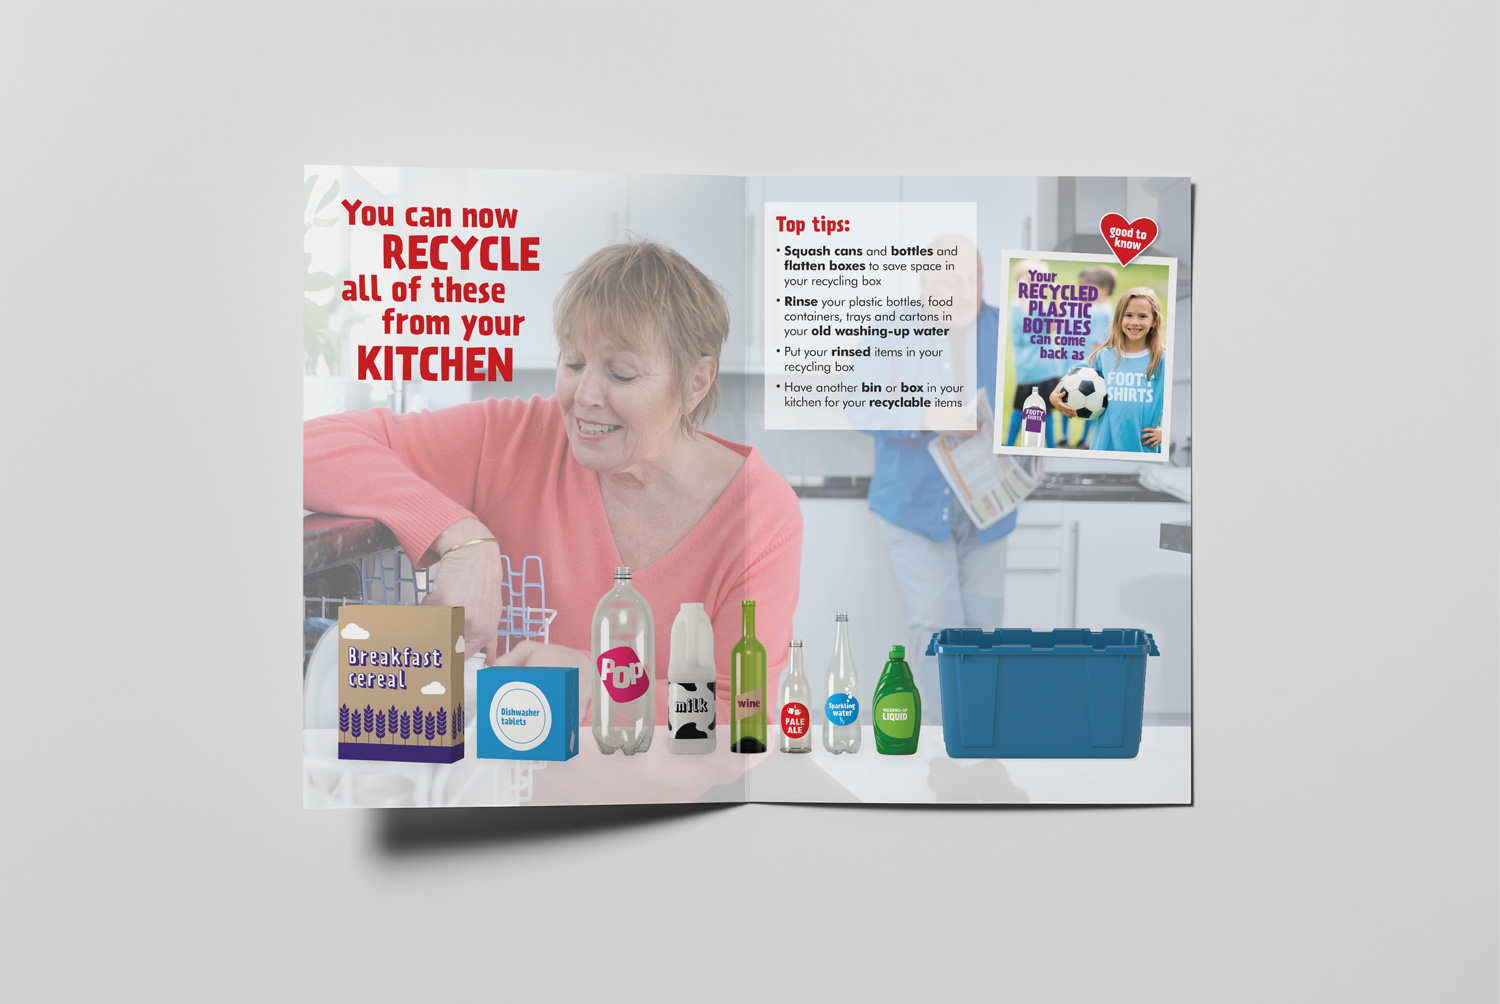 Recycle-for-London-Recycling-Leaflet-inside-spread-by-Get-it-Sorted.jpg